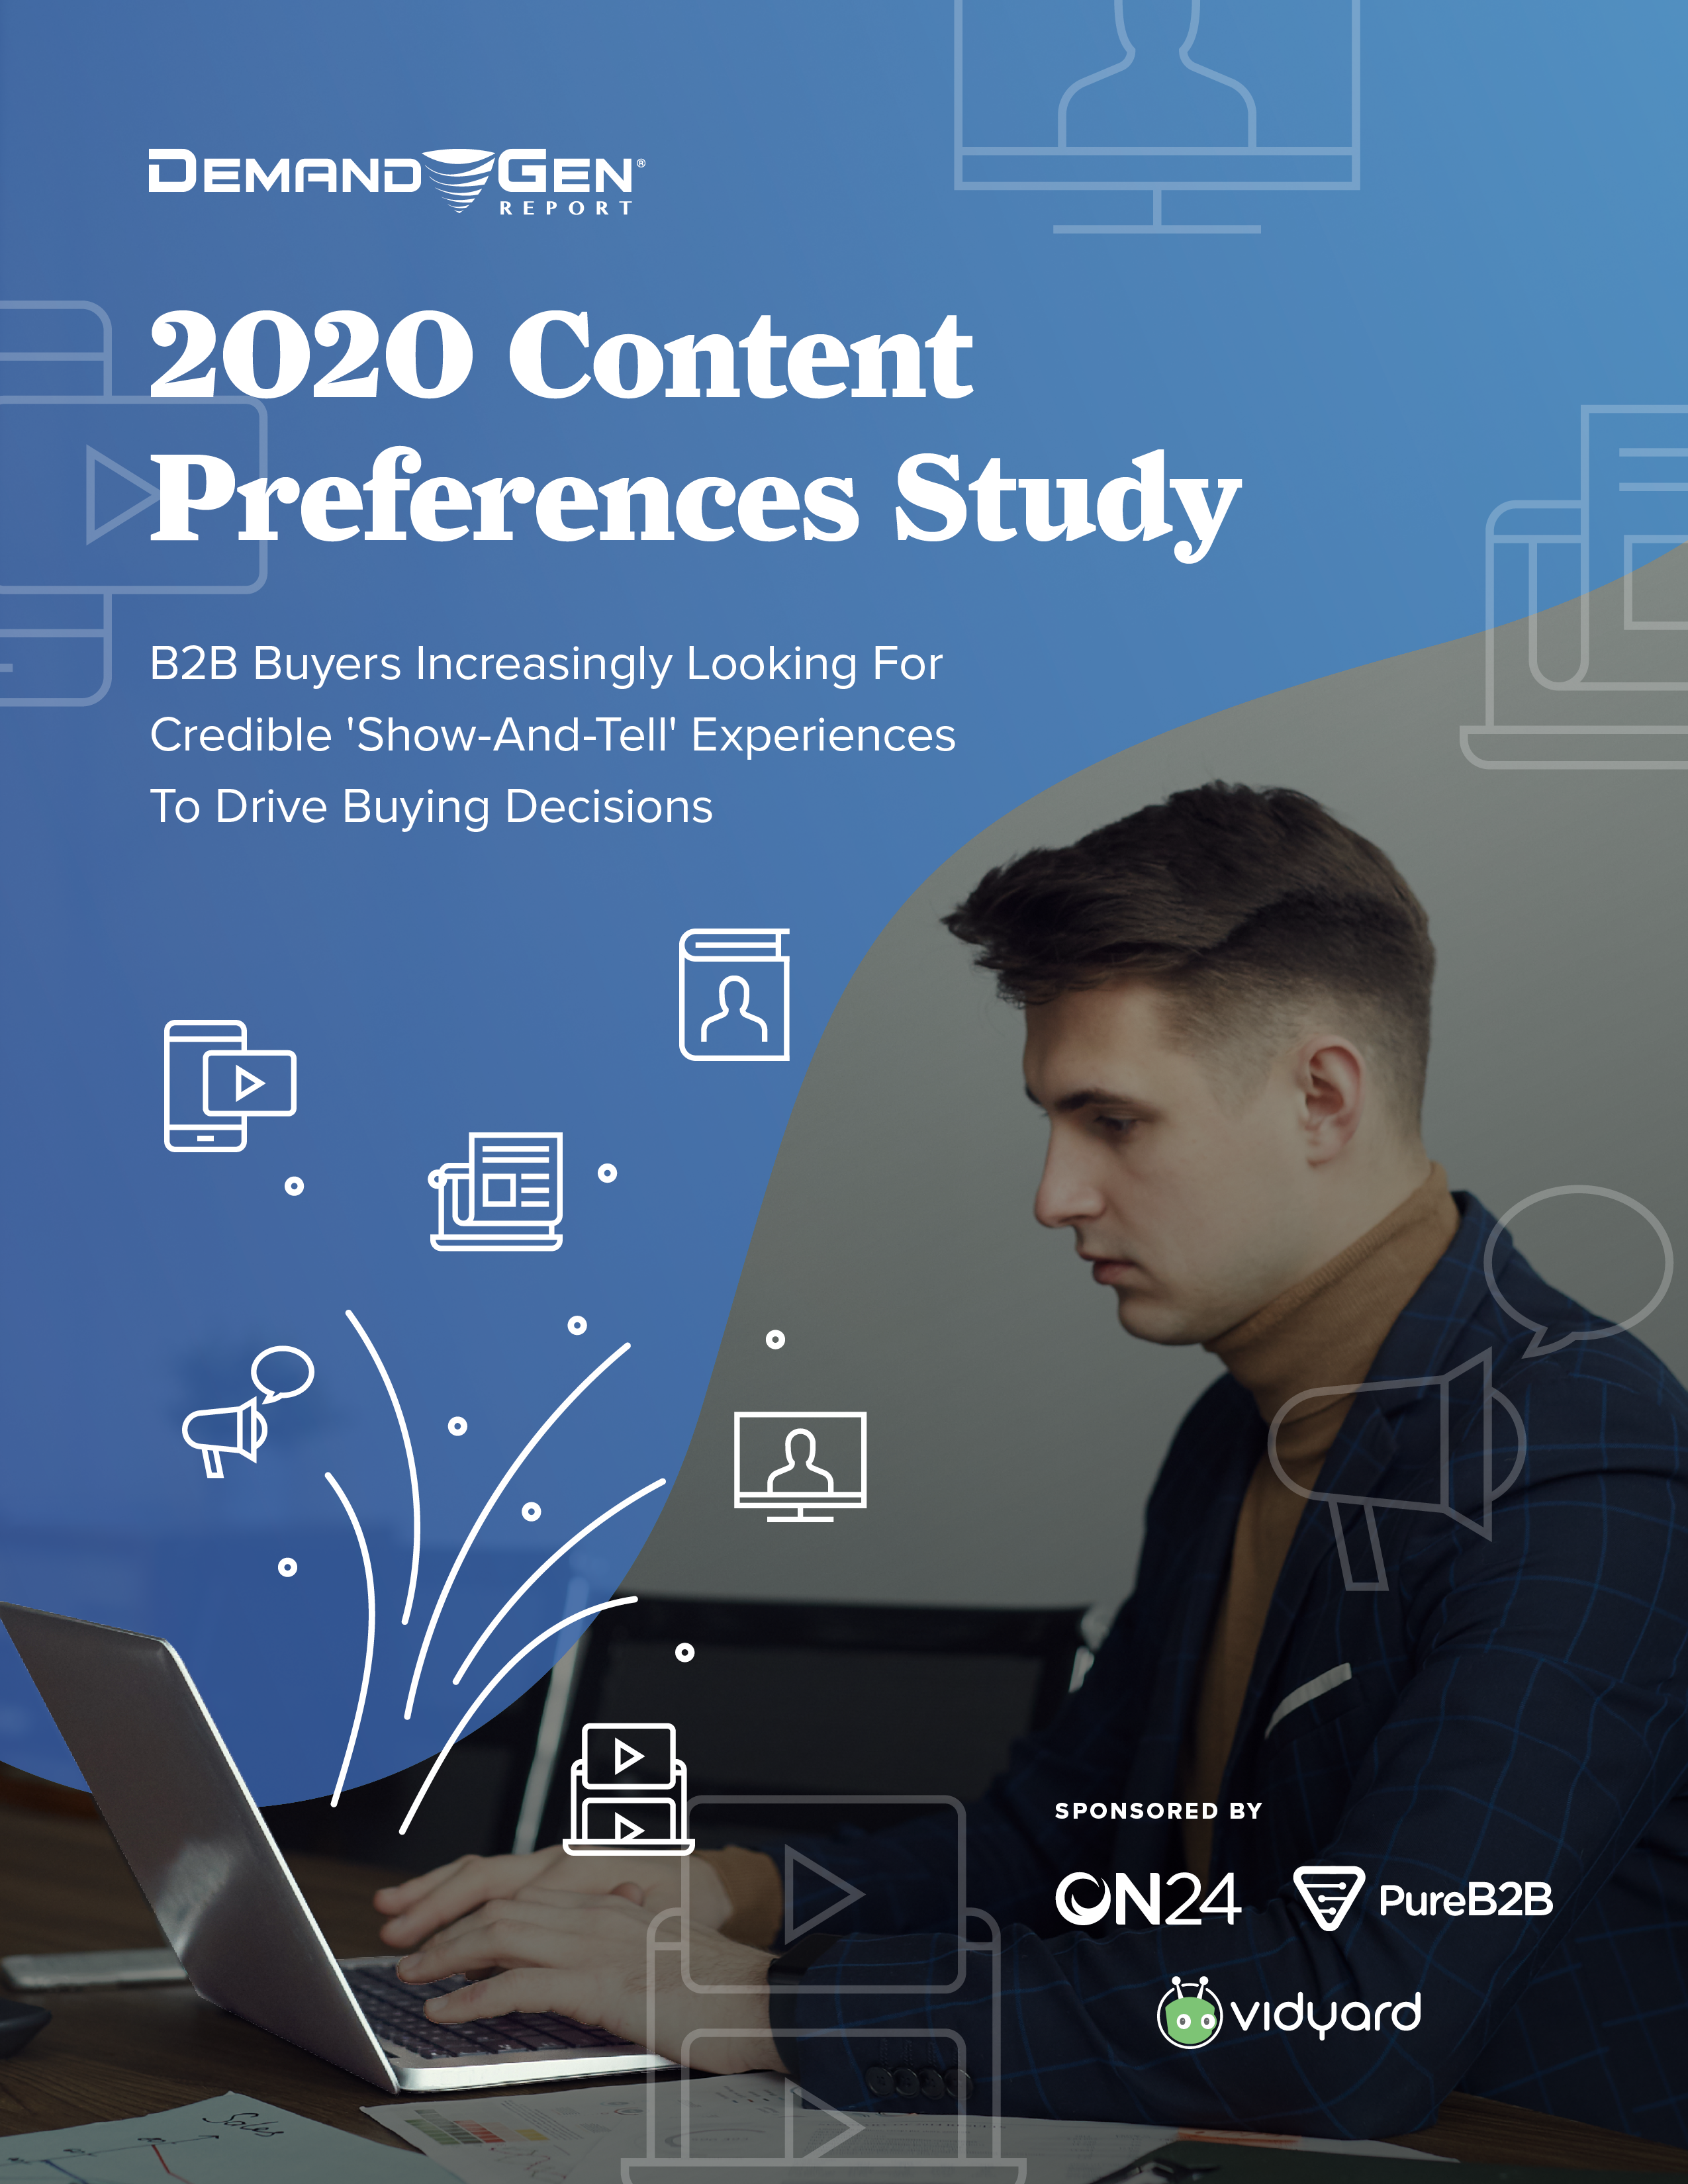 Video Tops List Of Preferred Content For Information-Hungry B2B Buyers